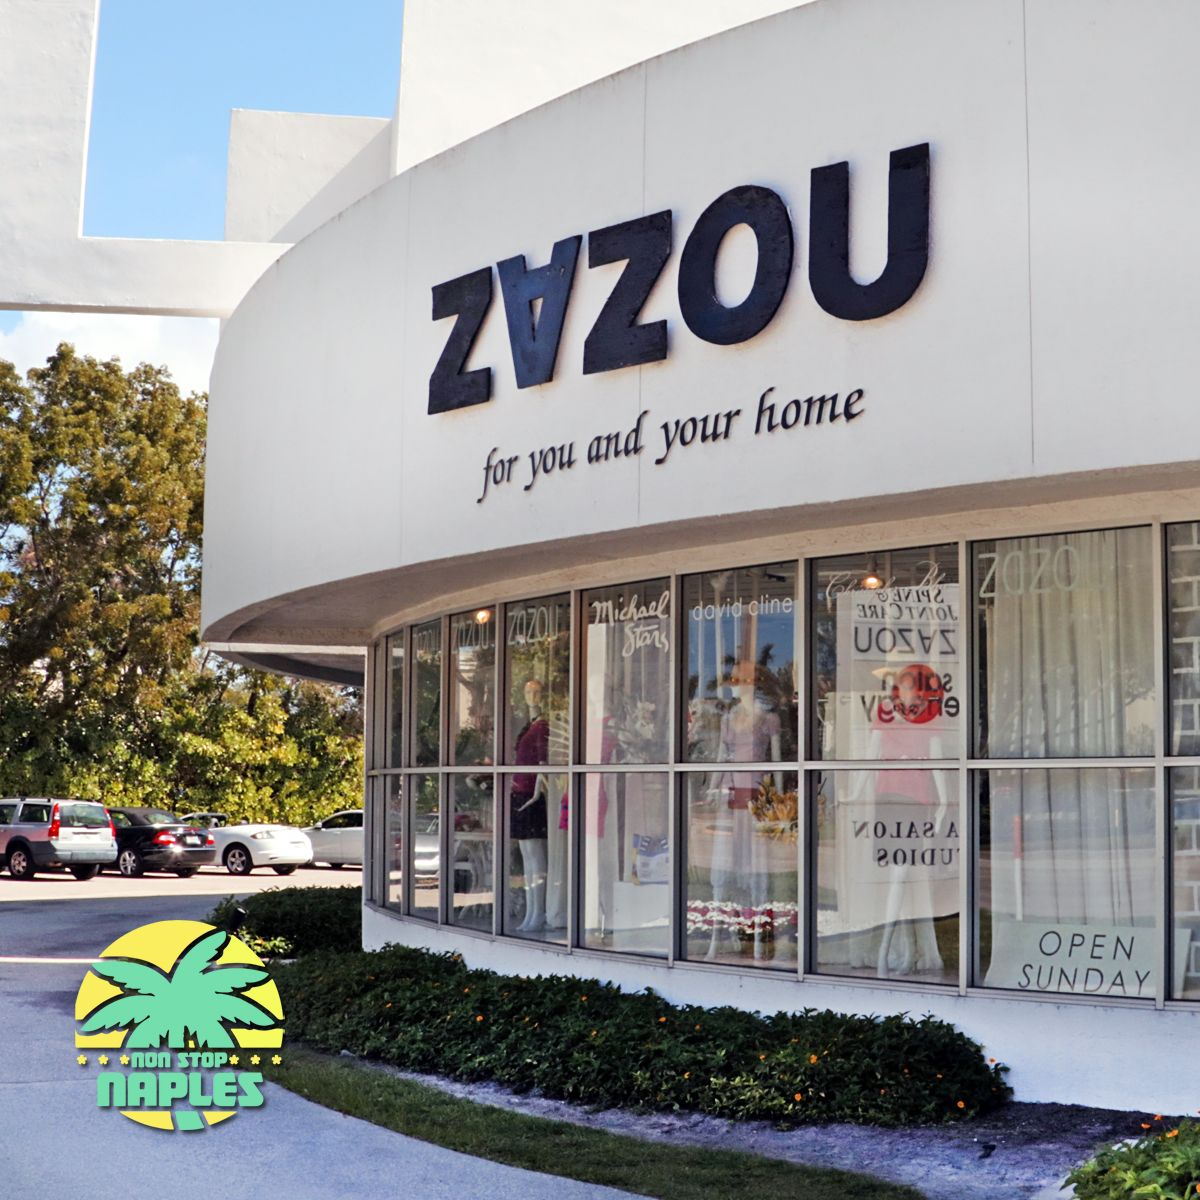 Dress For Success With Zazou The Ultimate Fashion Boutique In Naples Florida Zazou Is A French Slang Word From Th Dress For Success French Slang Slang Words